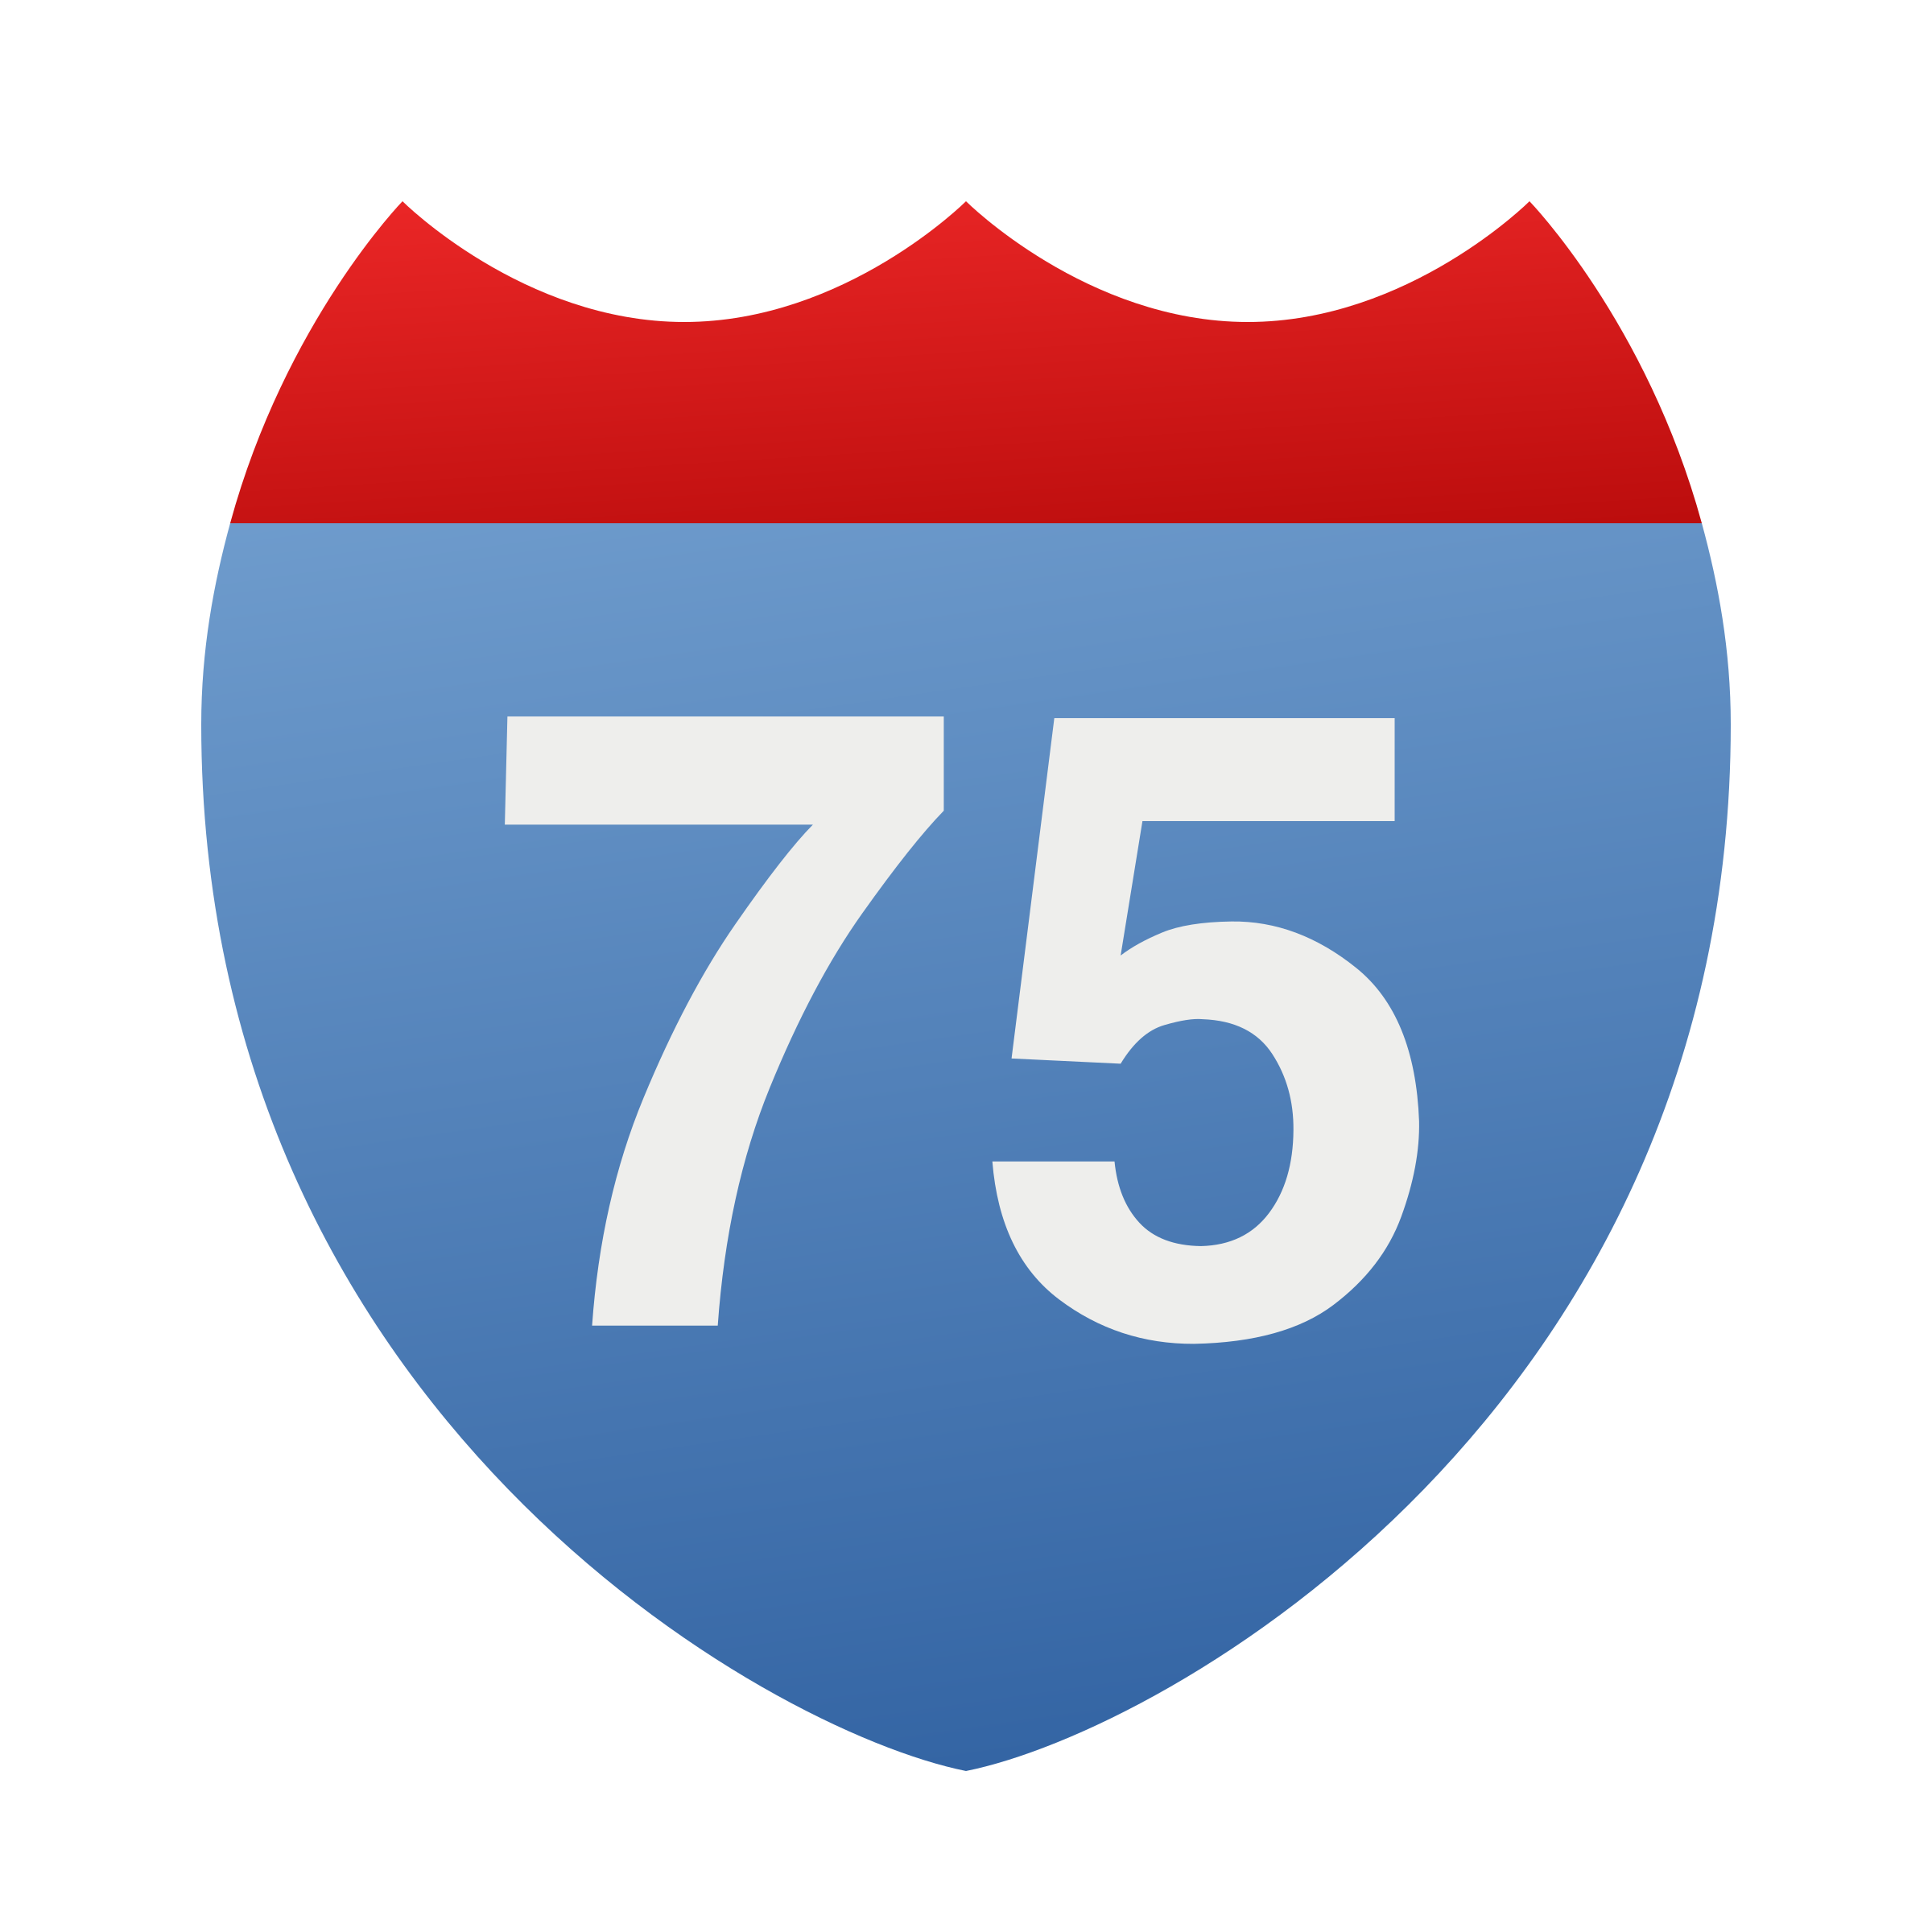 Interstate 75 icon by jhnri4